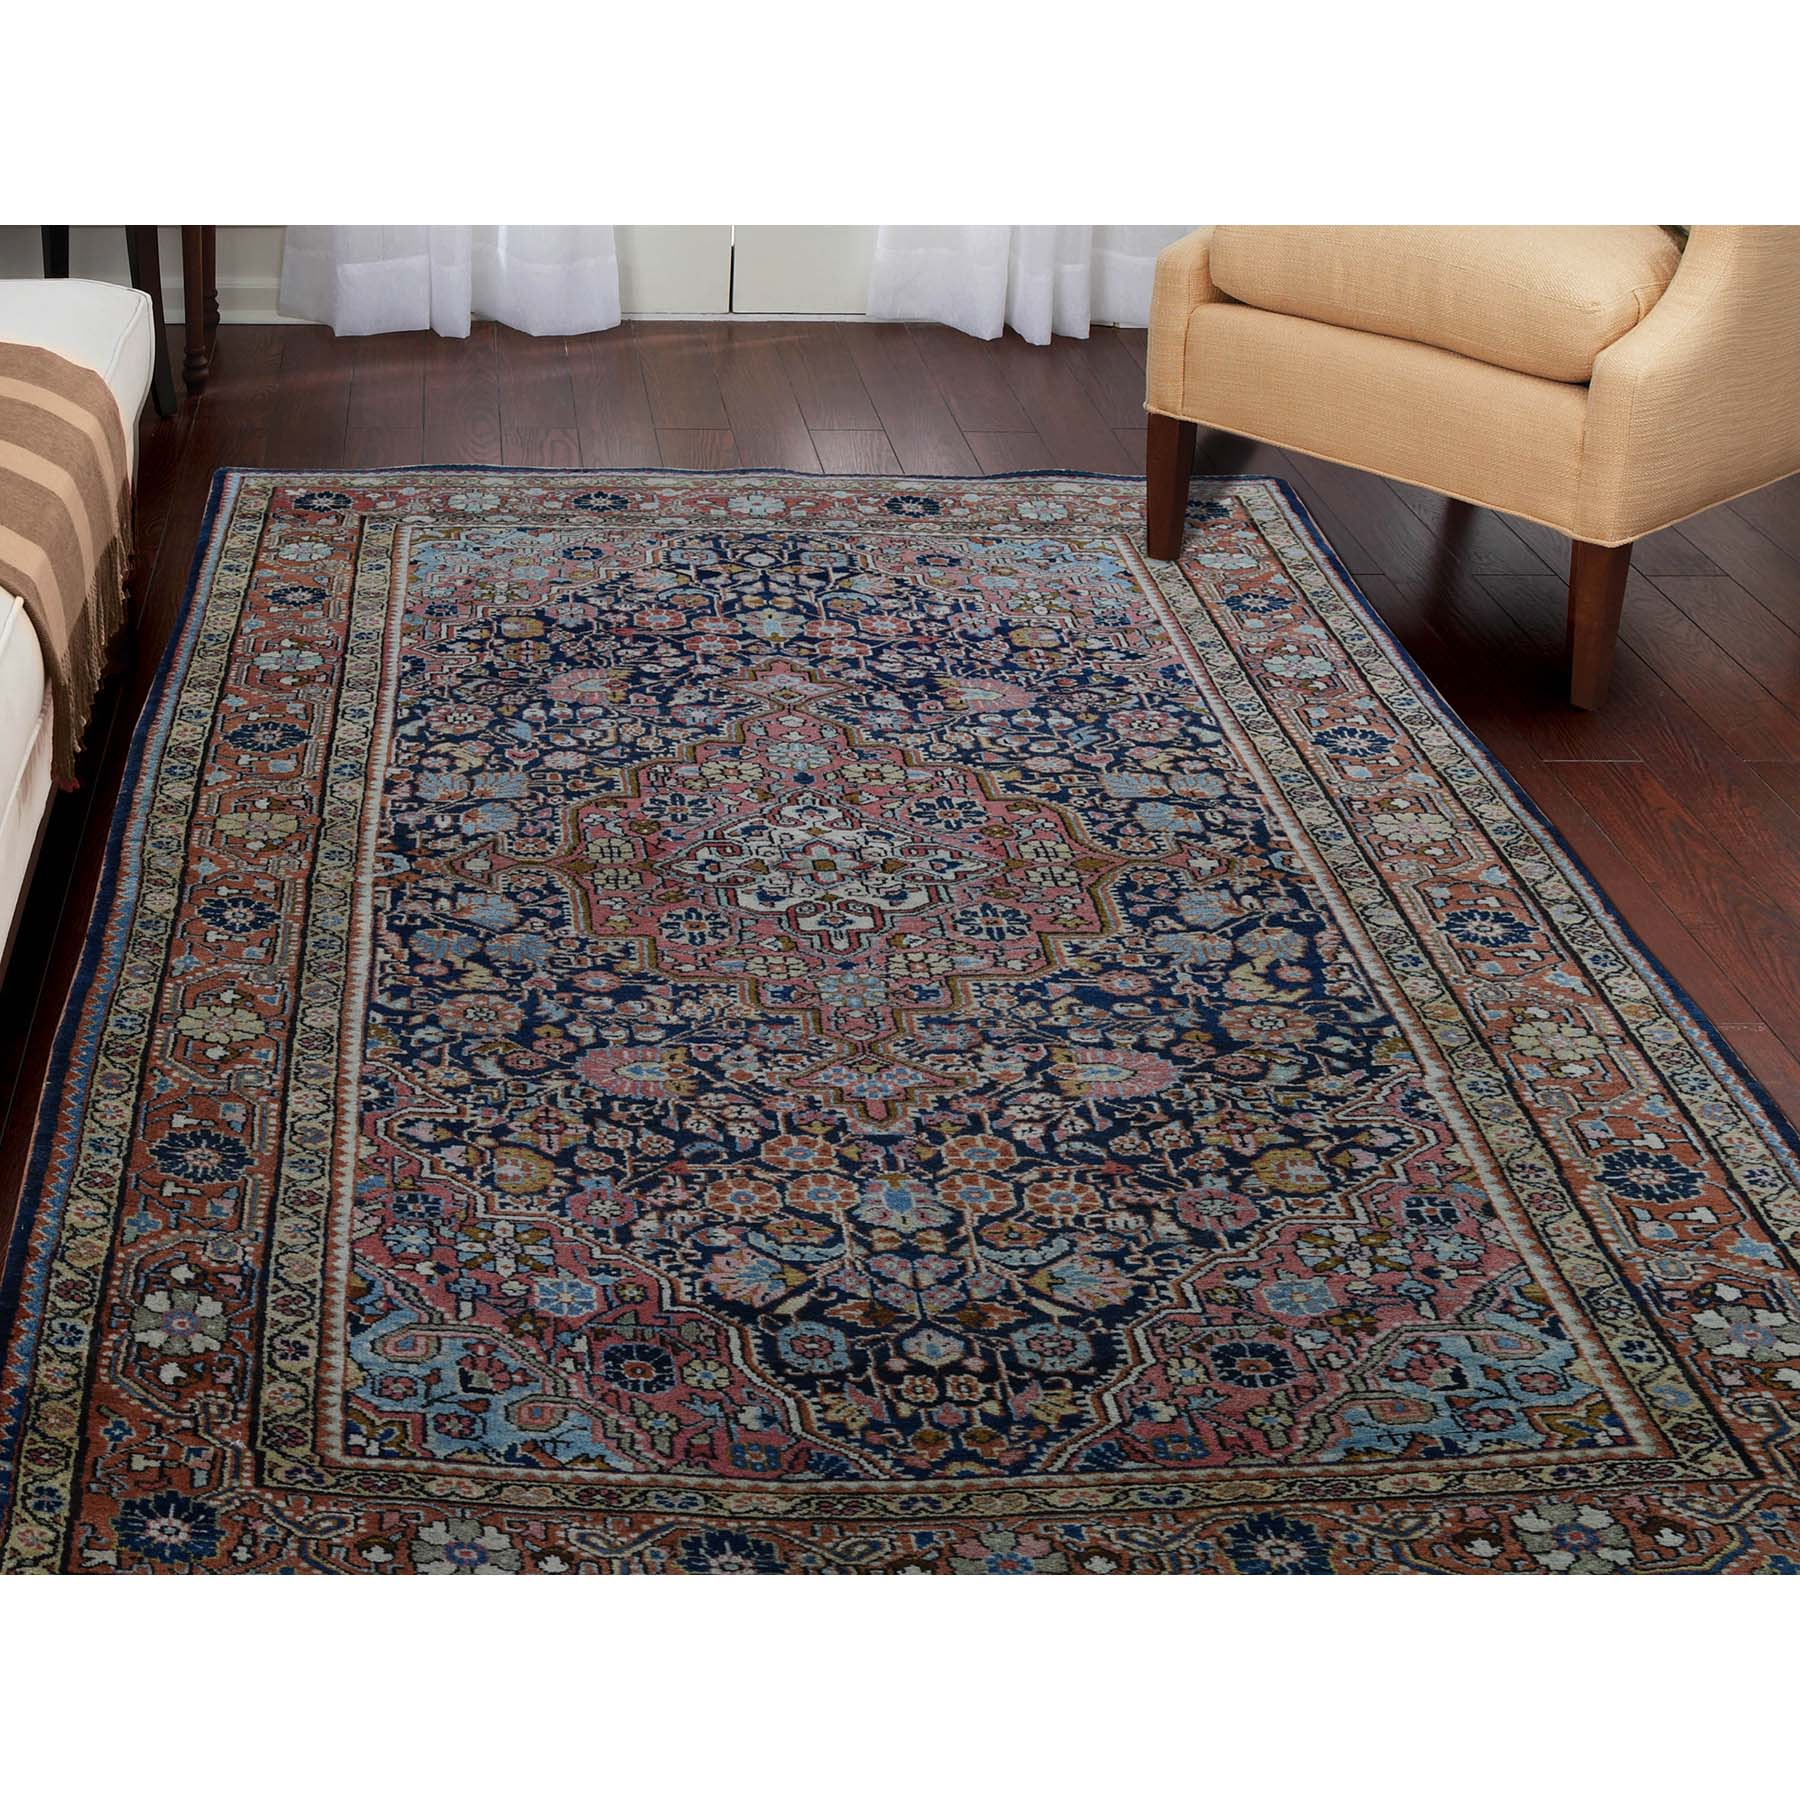 4-4 x6-8  Antique Persian Josan Sarouk Full Pile Good Condition Pure Wool Hand-knotted Oriental Rug